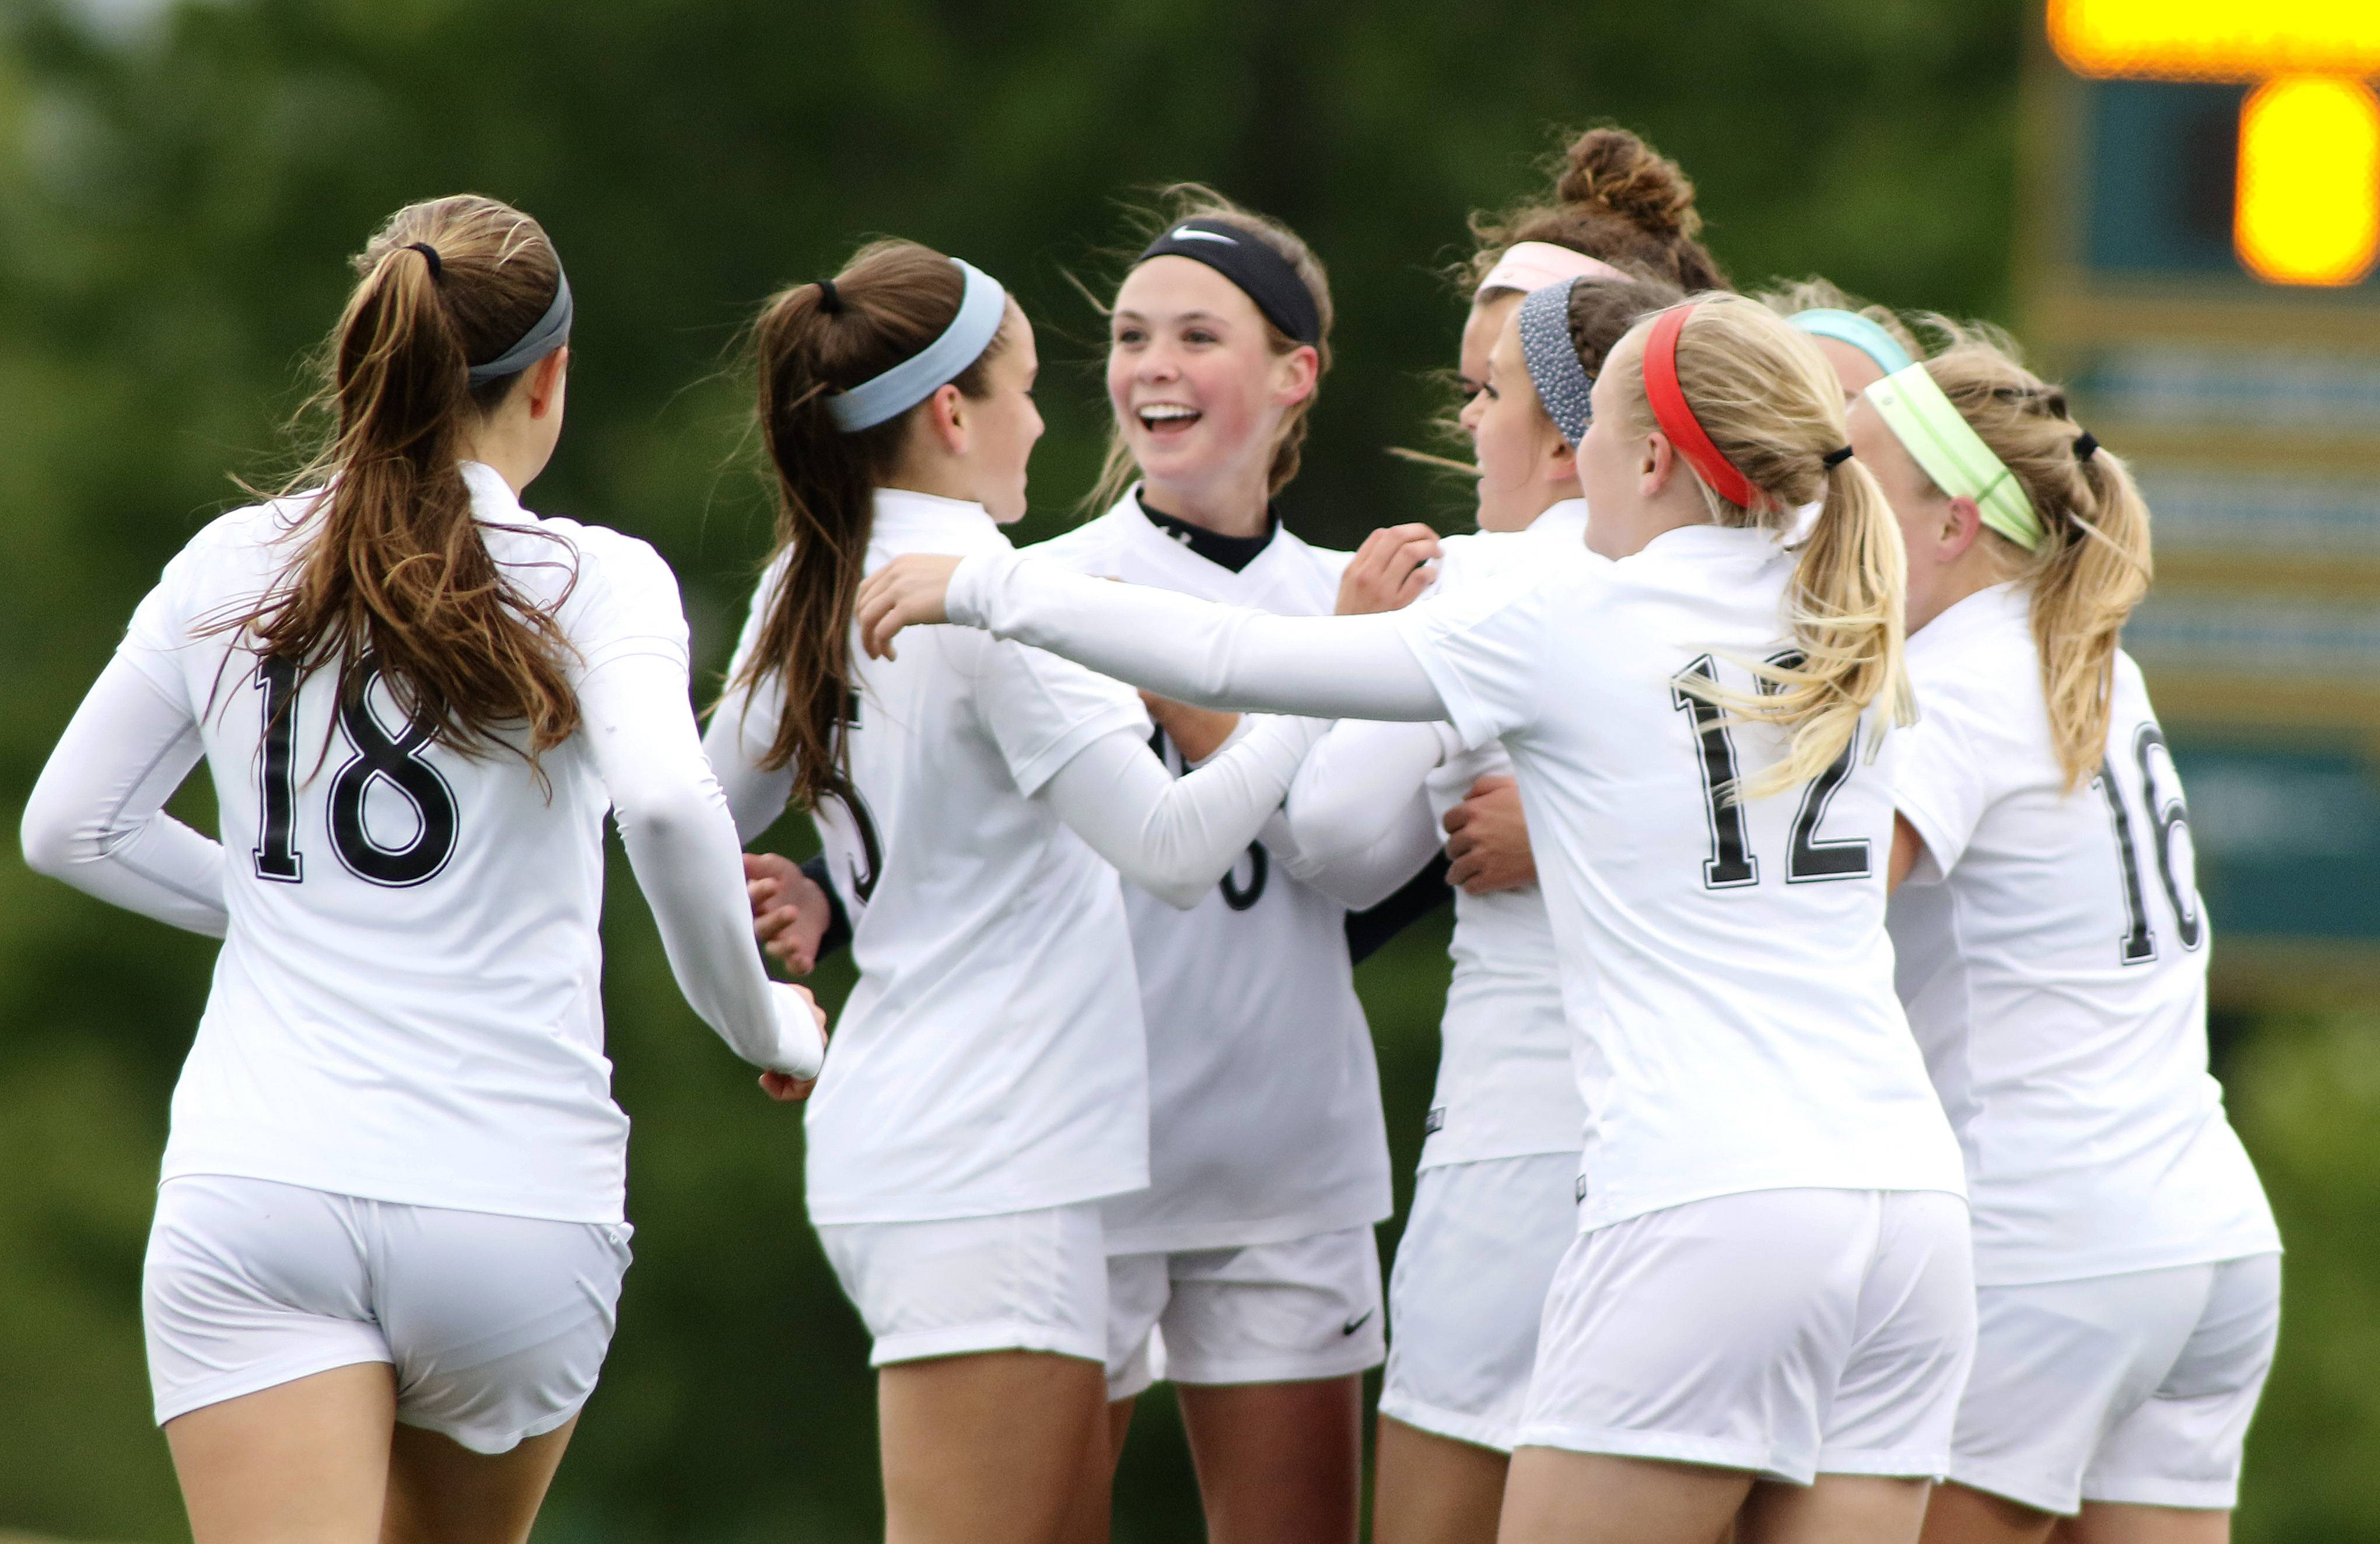 Metea Valley girls celebrate their first and only goal of a 1-0 win over Waubonsie Valley during regional girls soccer action in Aurora.